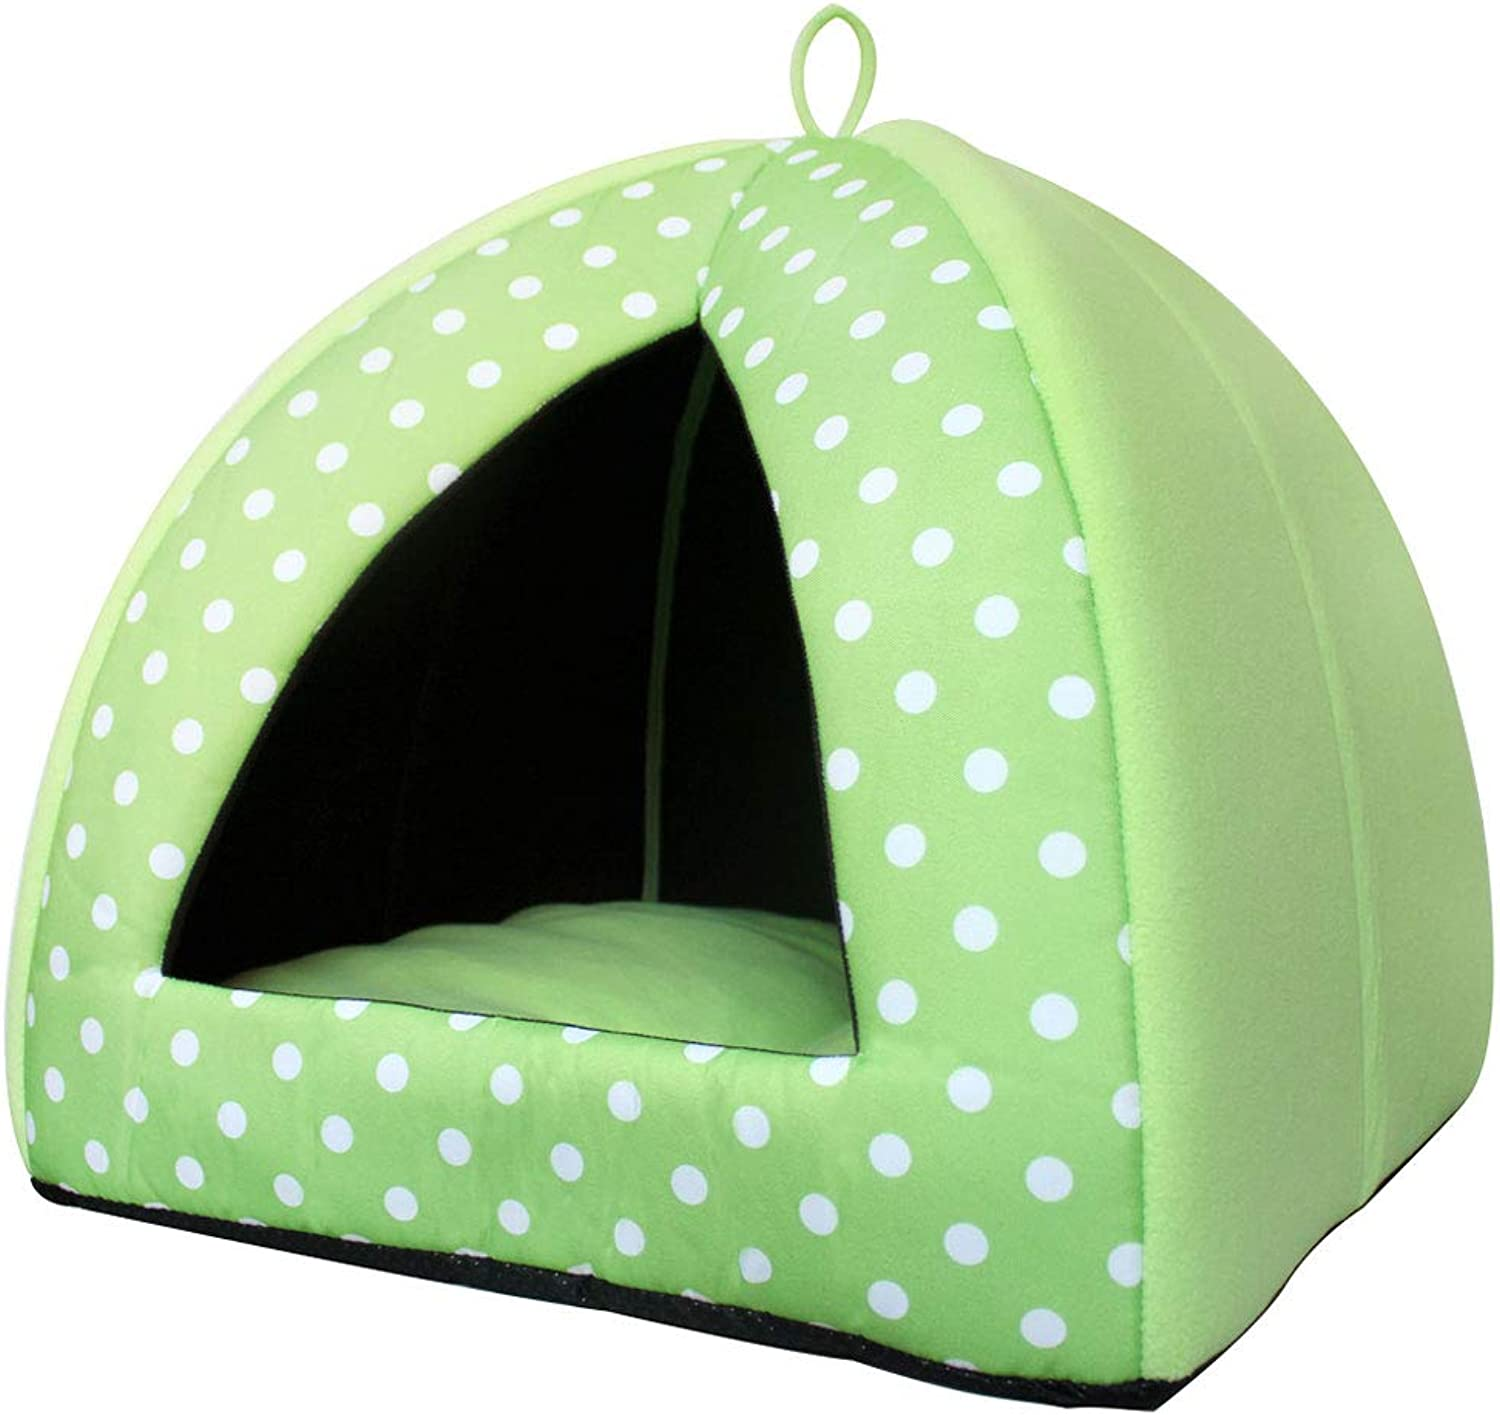 LYYL006 Cute Pet Cotton Bed Puppy Small Medium Dog Cat Sleeping House House Nonslip Warm Washable (color   Green, Size   Xl 48  48  48cm)